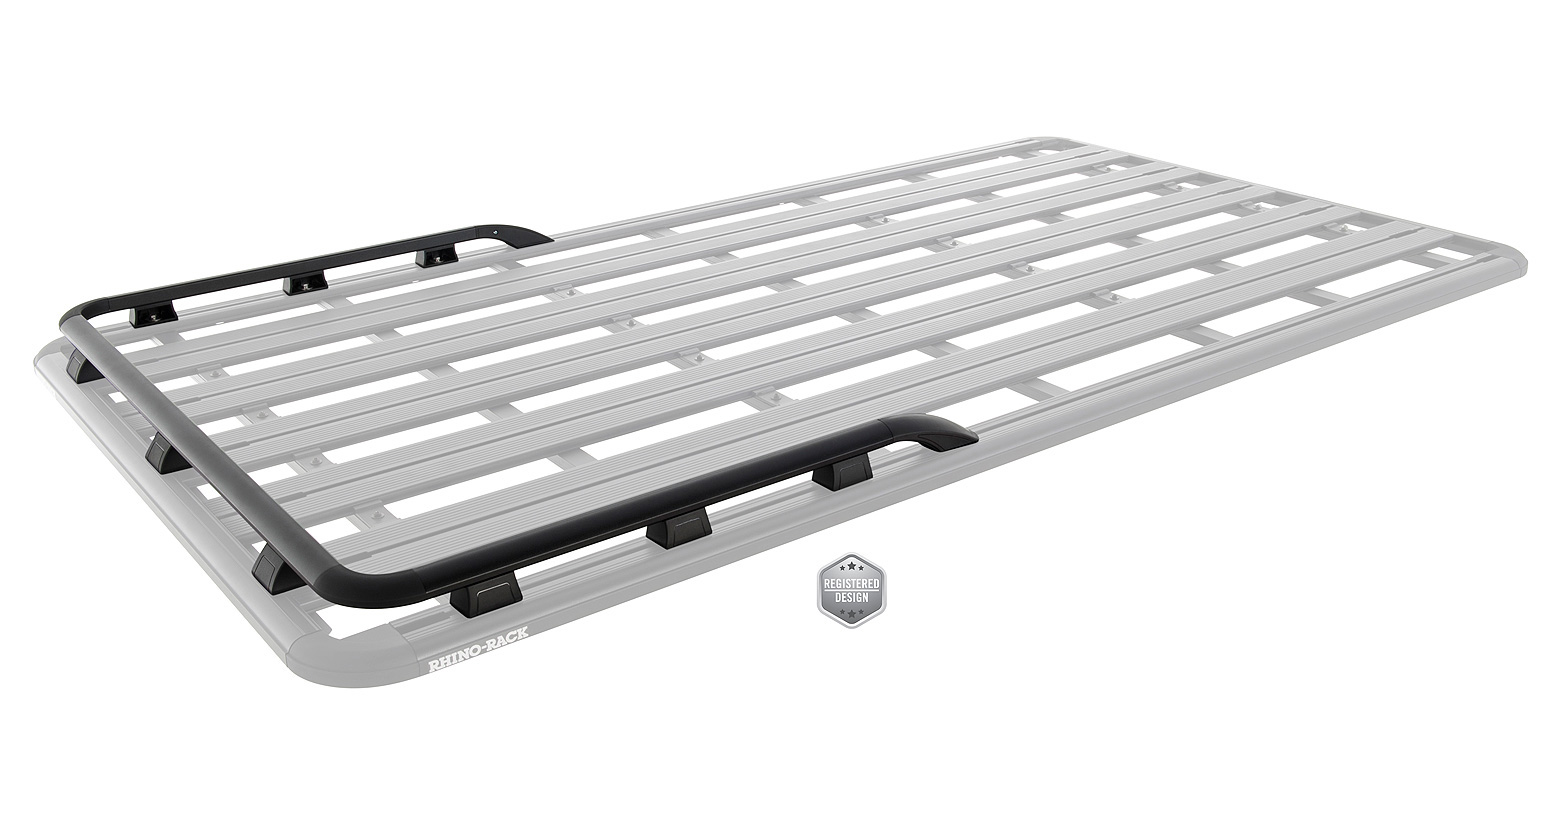 Pioneer Platform Front & Side Rails (Suit 42105B)